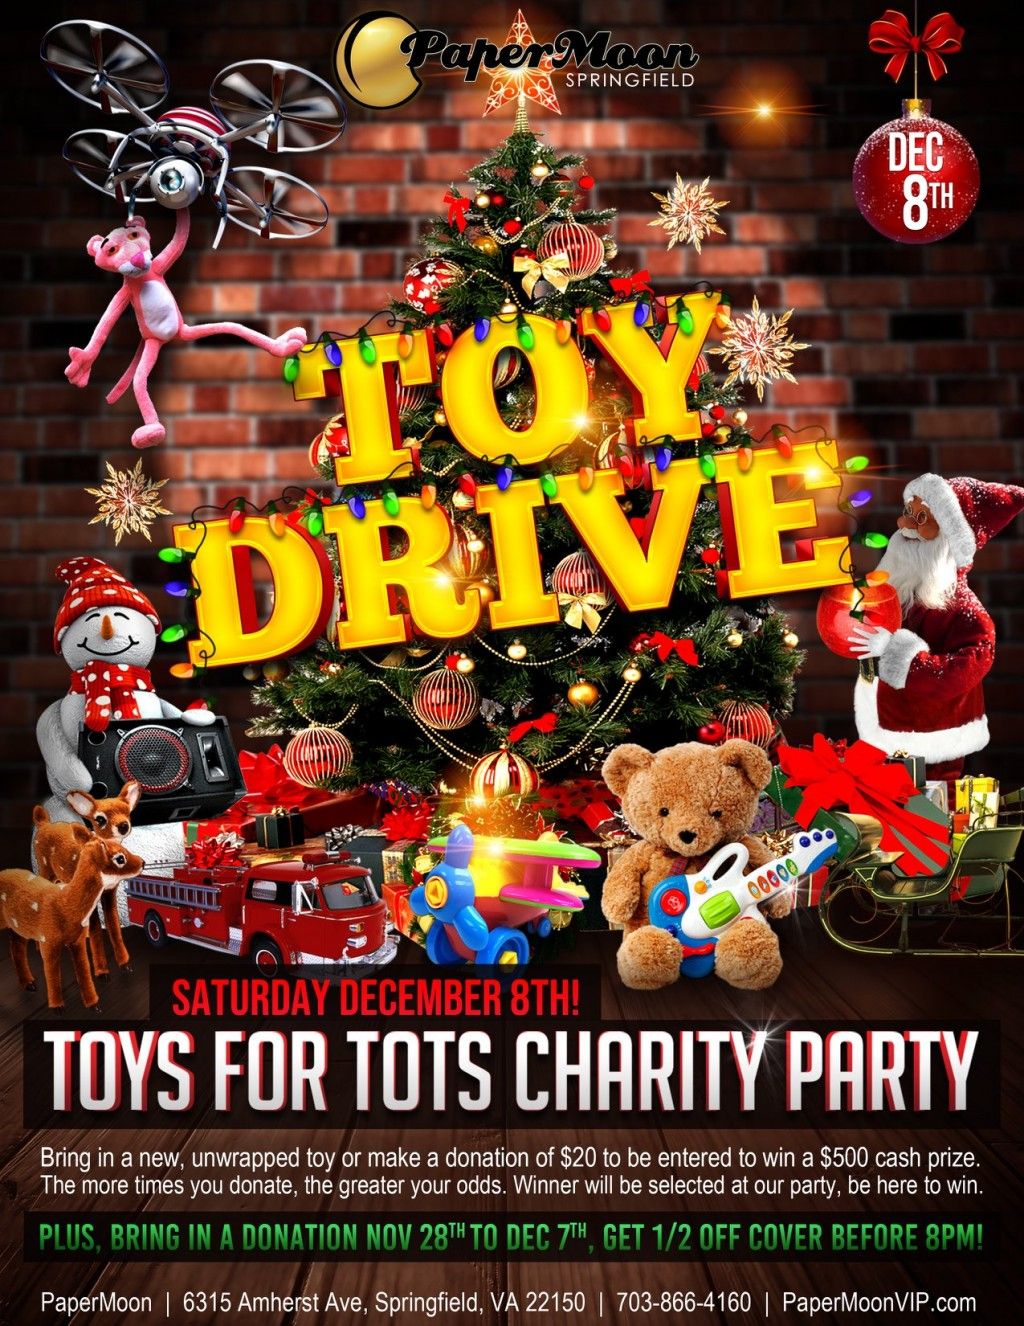 PaperMoon Gentlemens Club is offering a very tempting Christmas treat to good Samaritans who donate to Toys for Tots